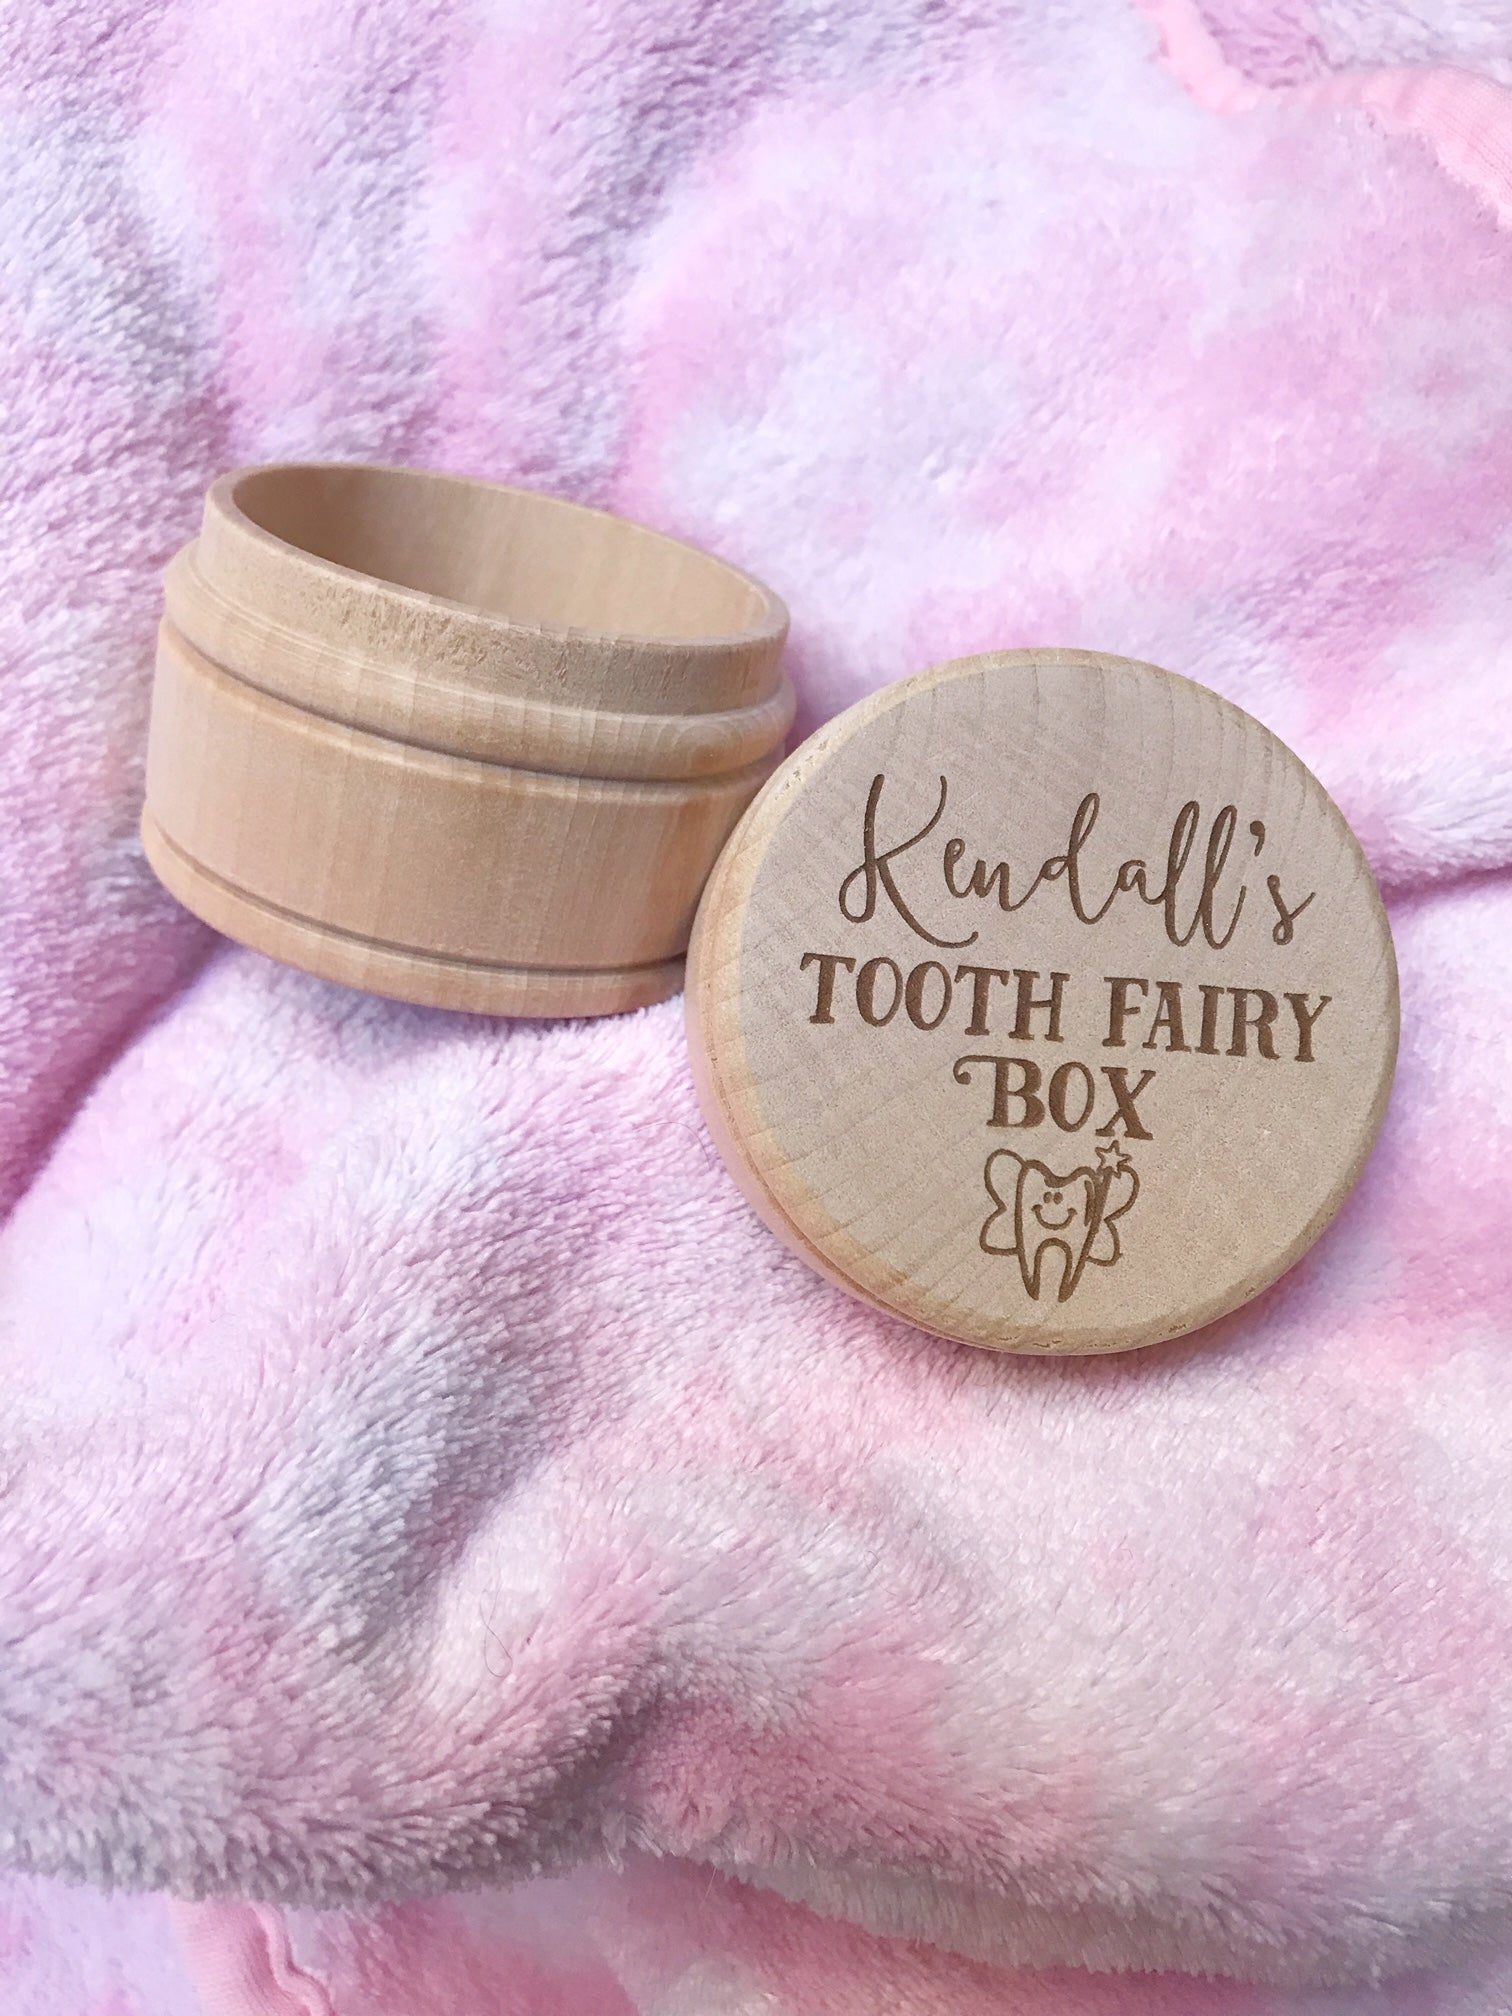 New Product Alert! Engraved Tooth Fairy Box!